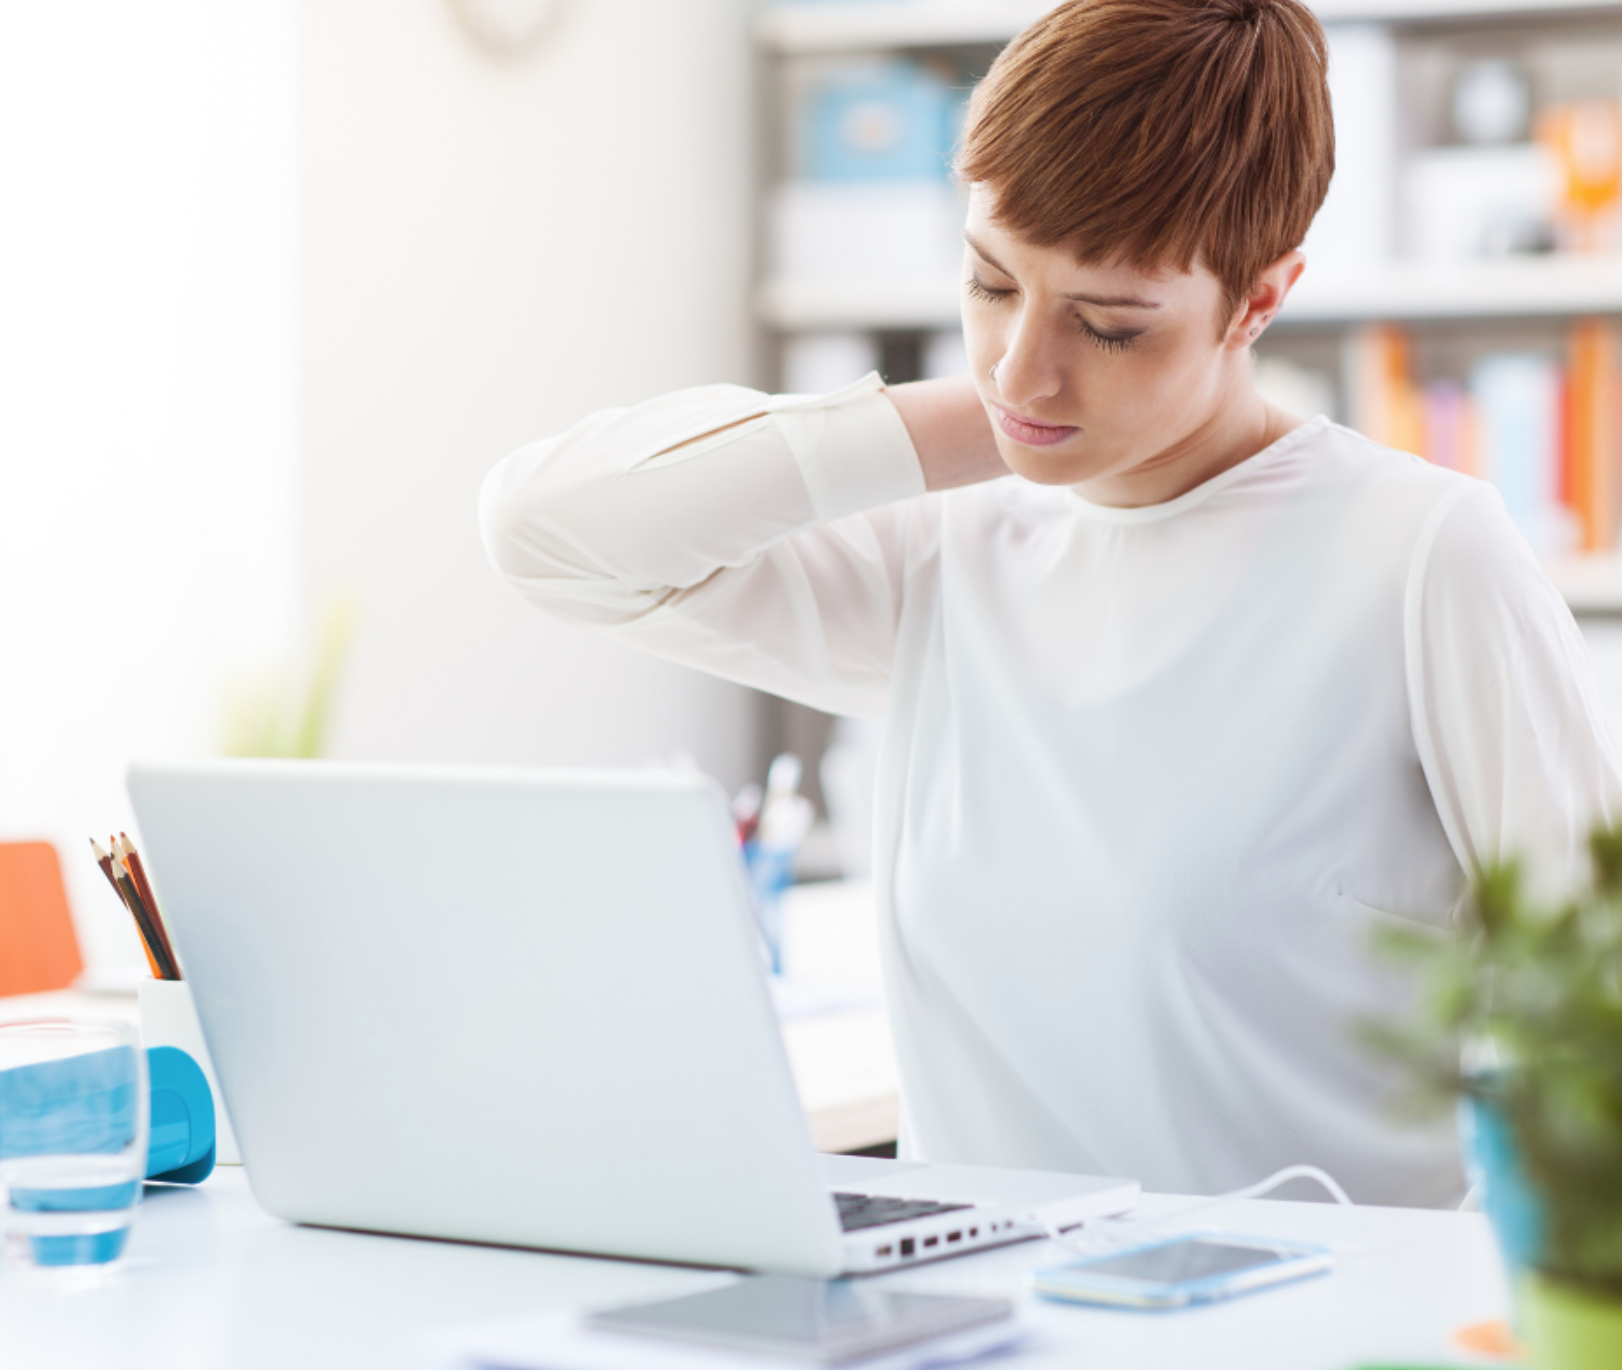 Eliminating Neck Pain and Headaches when Working From Home